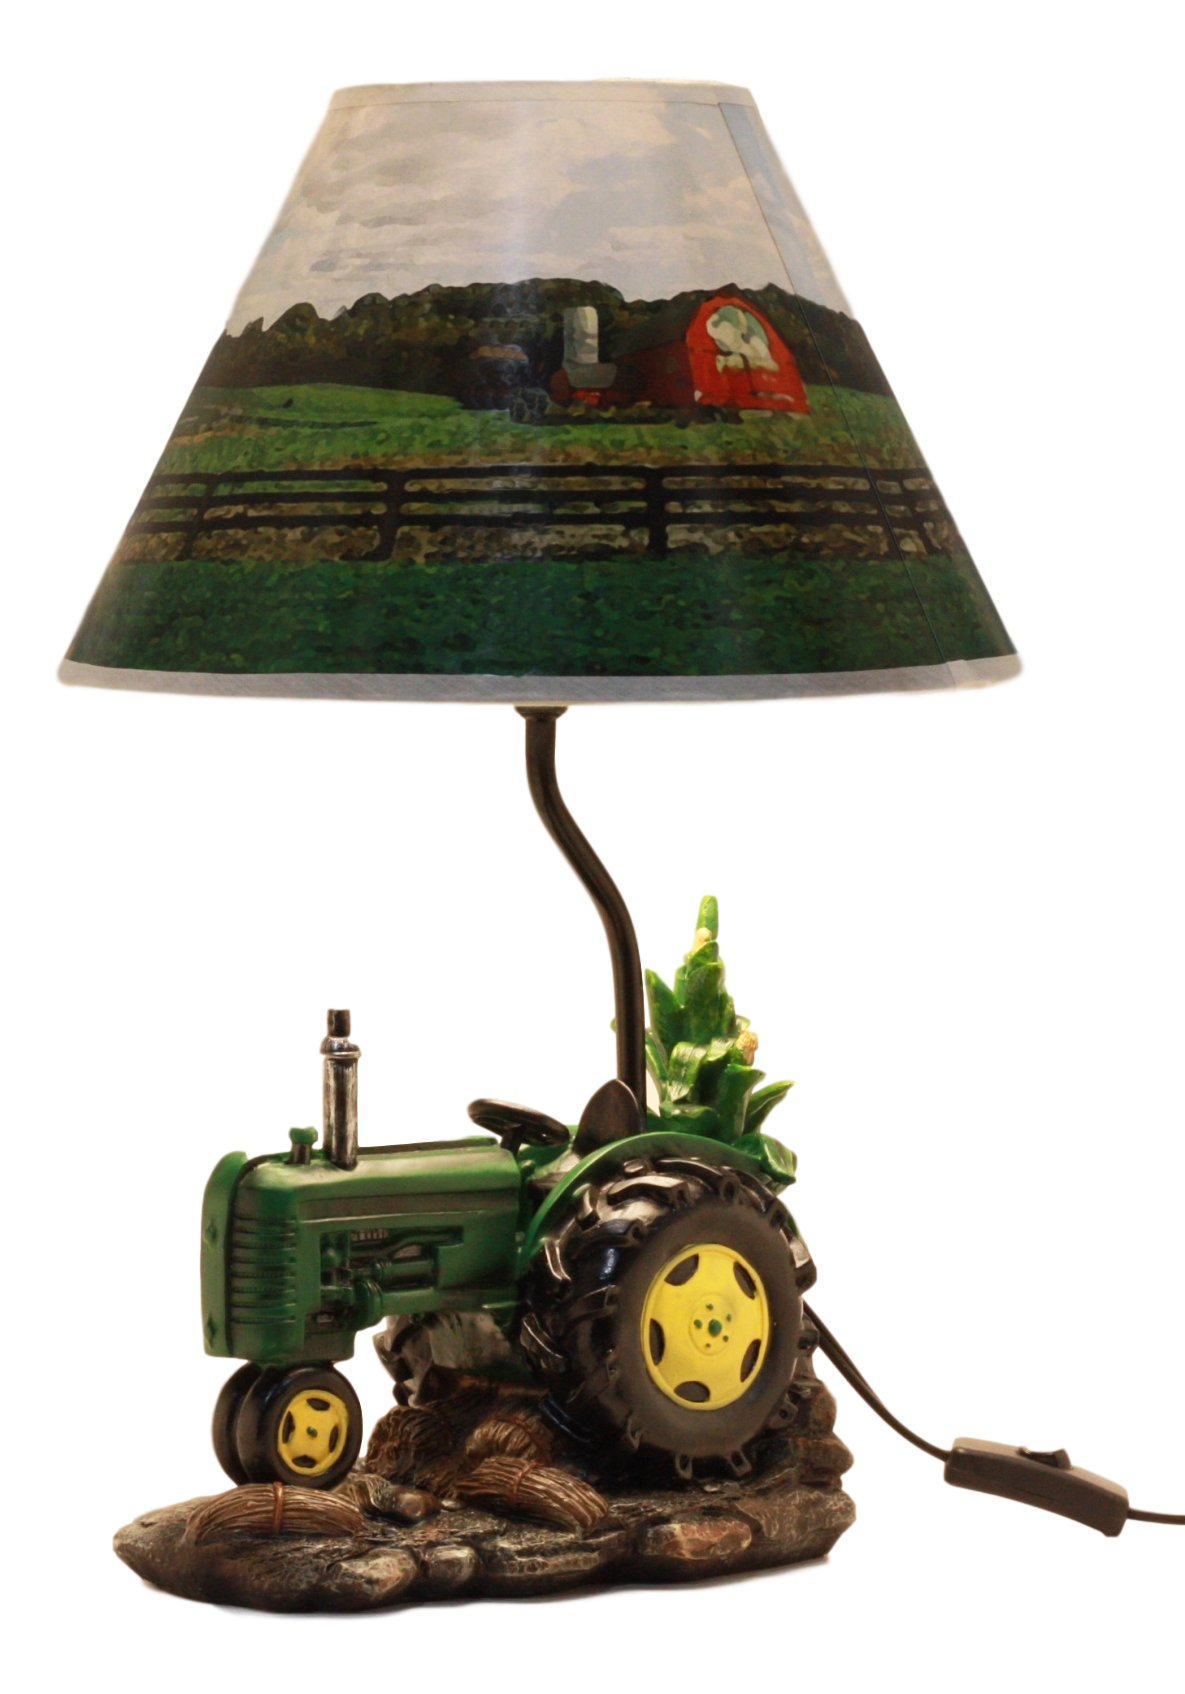 Ebros Gift Vintage Country Farm Harvest Season Green Tractor Desktop Table Lamp With Nature Printed Shade Home Decor 18''Tall